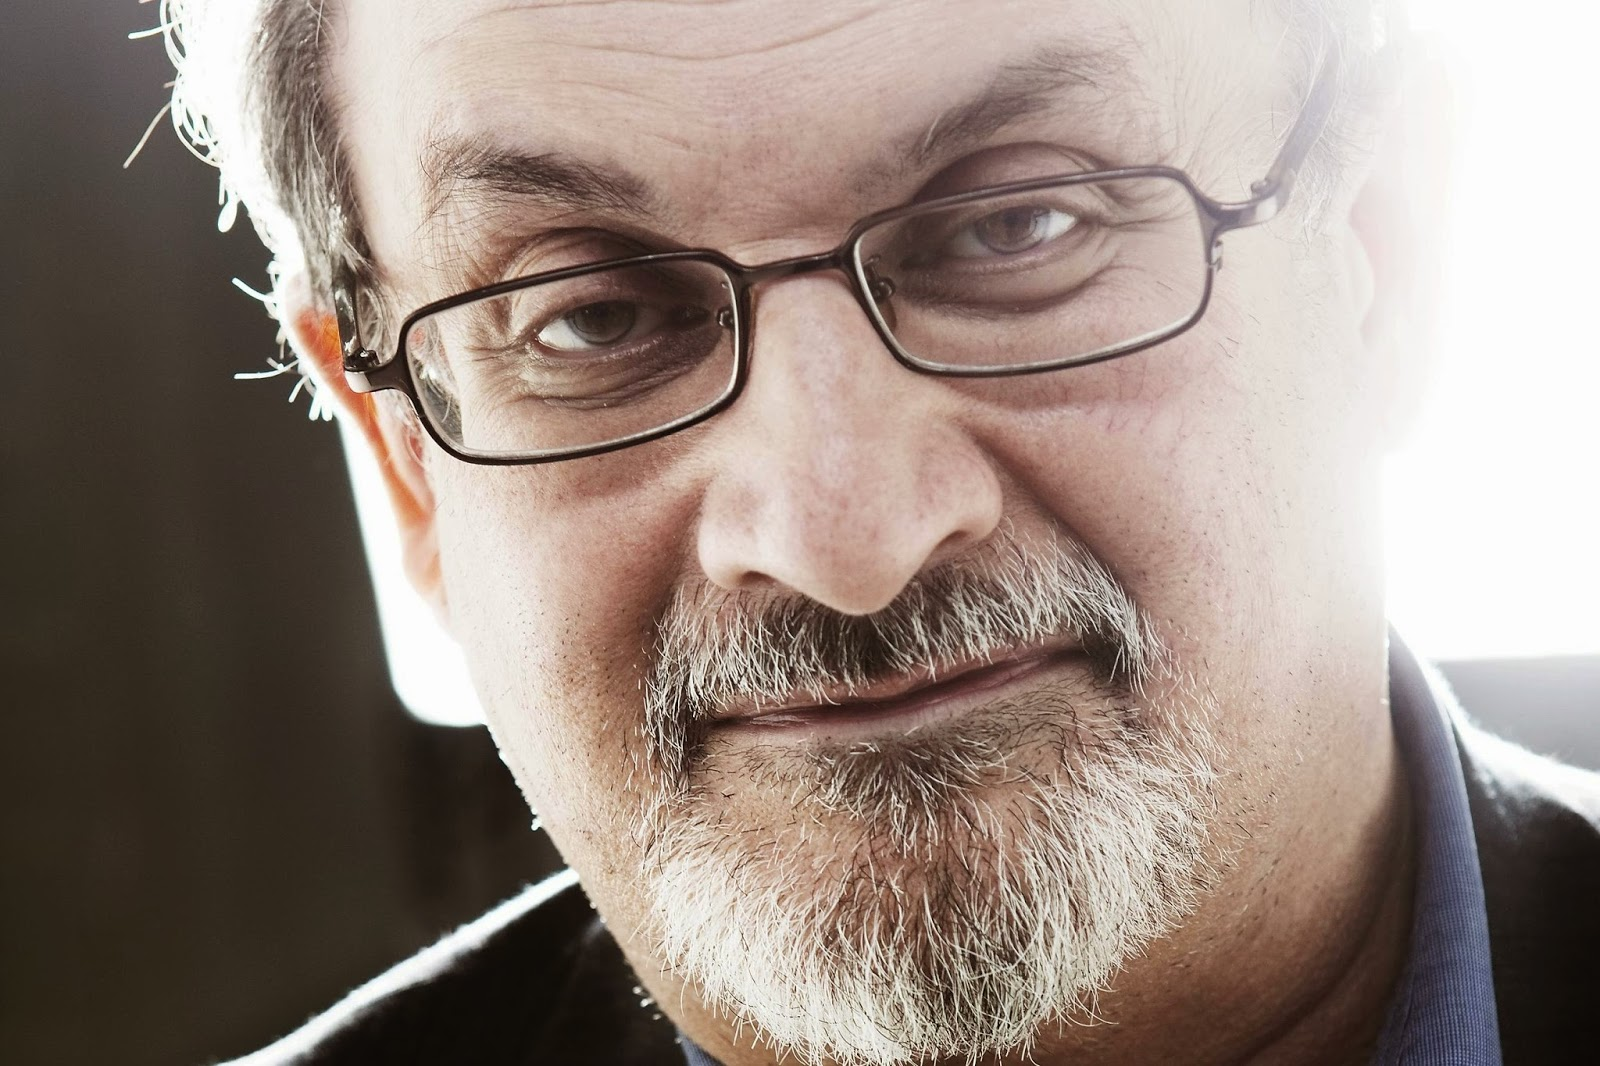 dragon my hero salman rushdie winner of the pen pinter prize my hero salman rushdie winner of the 2014 pen pinter prize